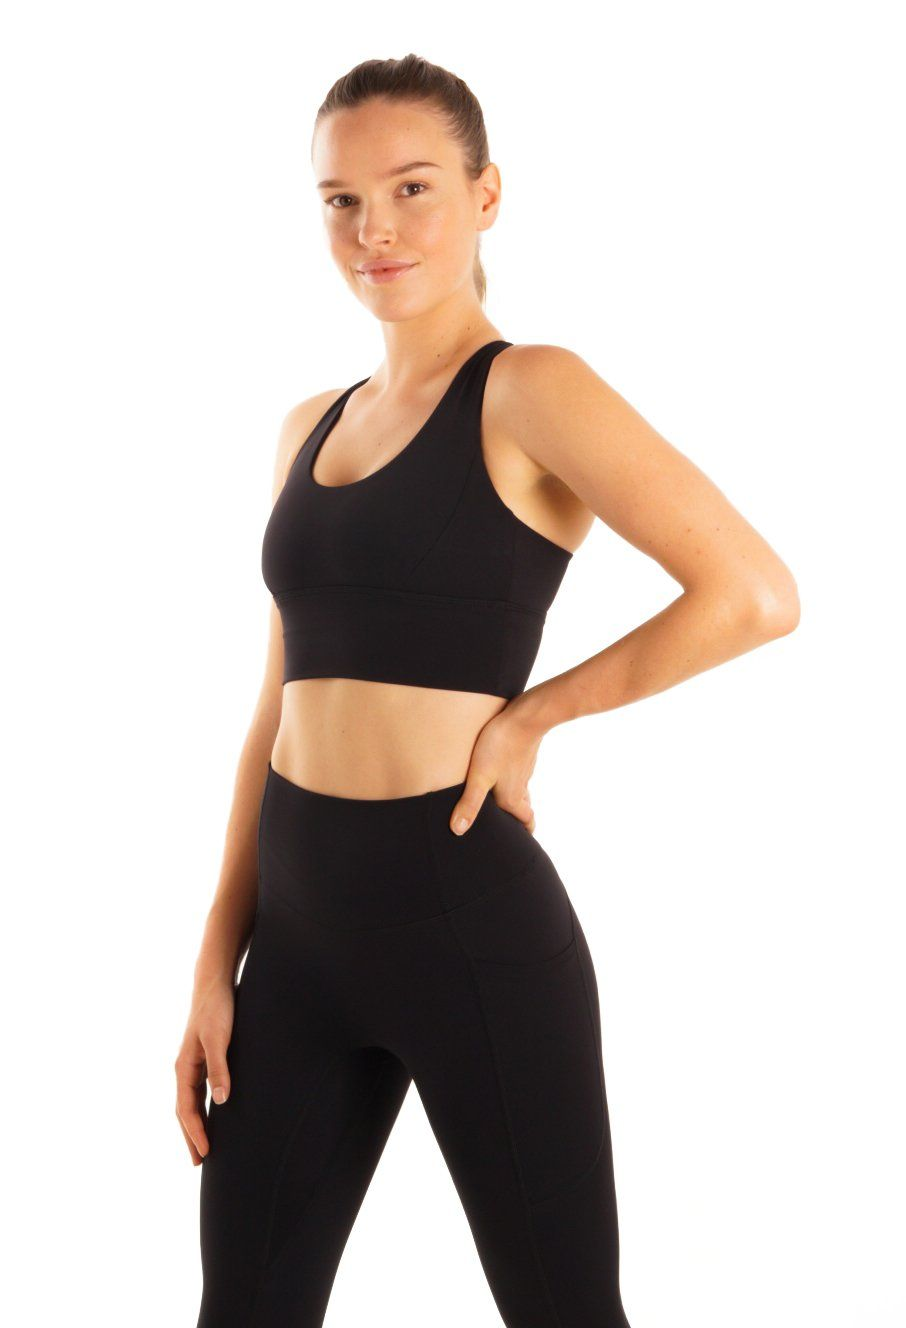 Our latest Revive crop is a medium support sports bra featuring a long line underbust and thick back straps for extra